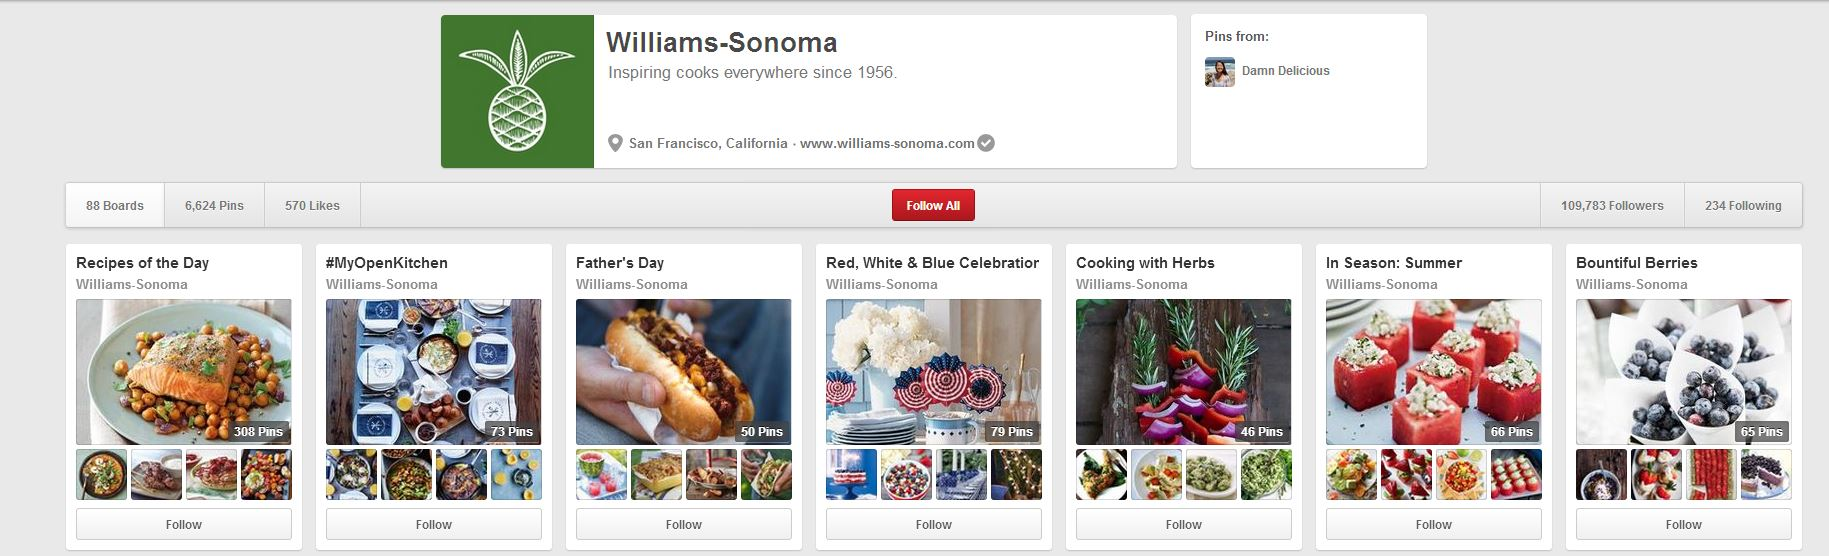 william-sonoma-pinterest